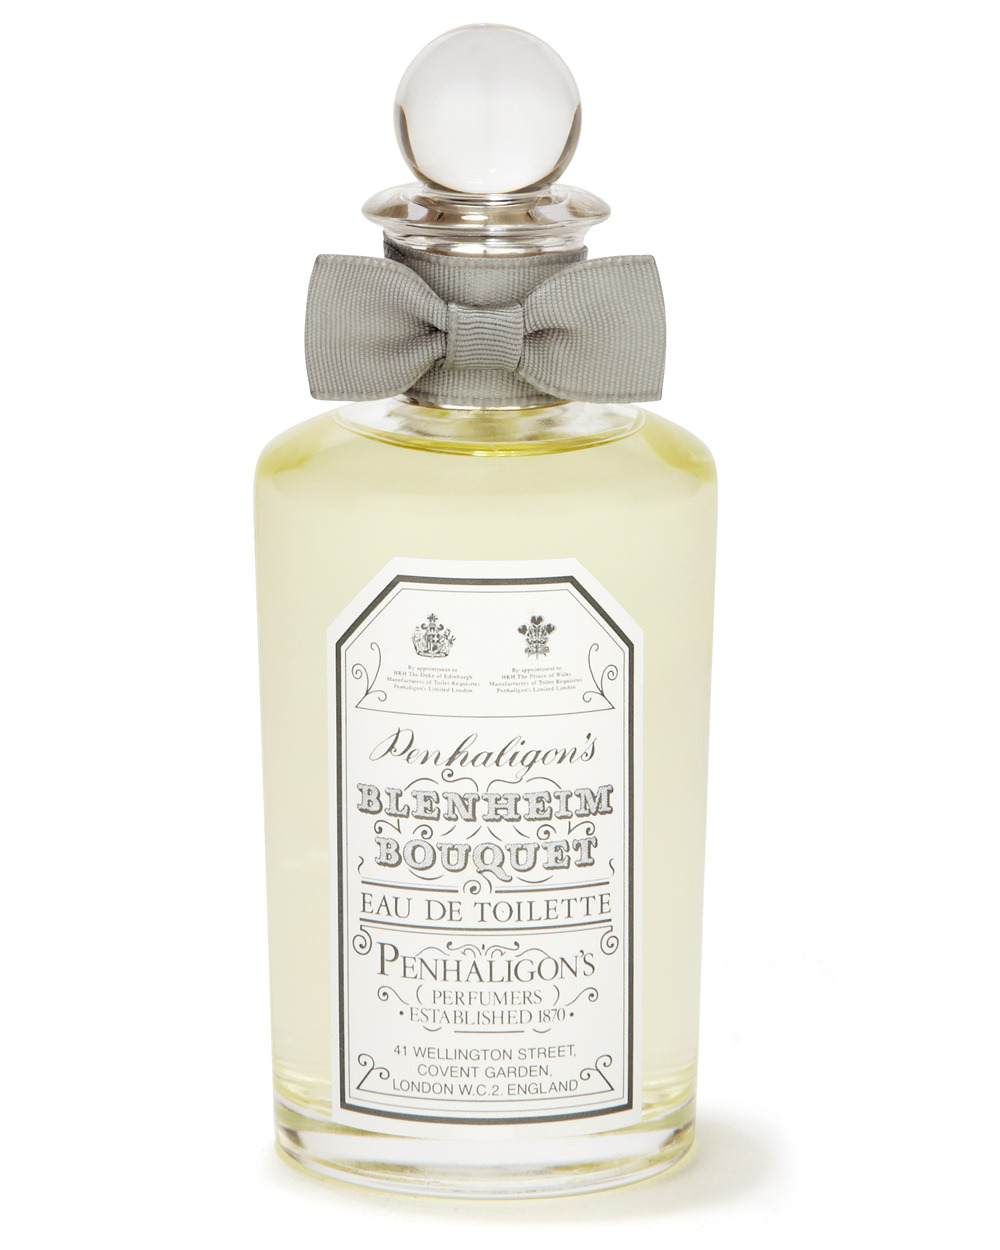 The PG Perfume Selection : Blenheim Bouquet, by Penhaligon's